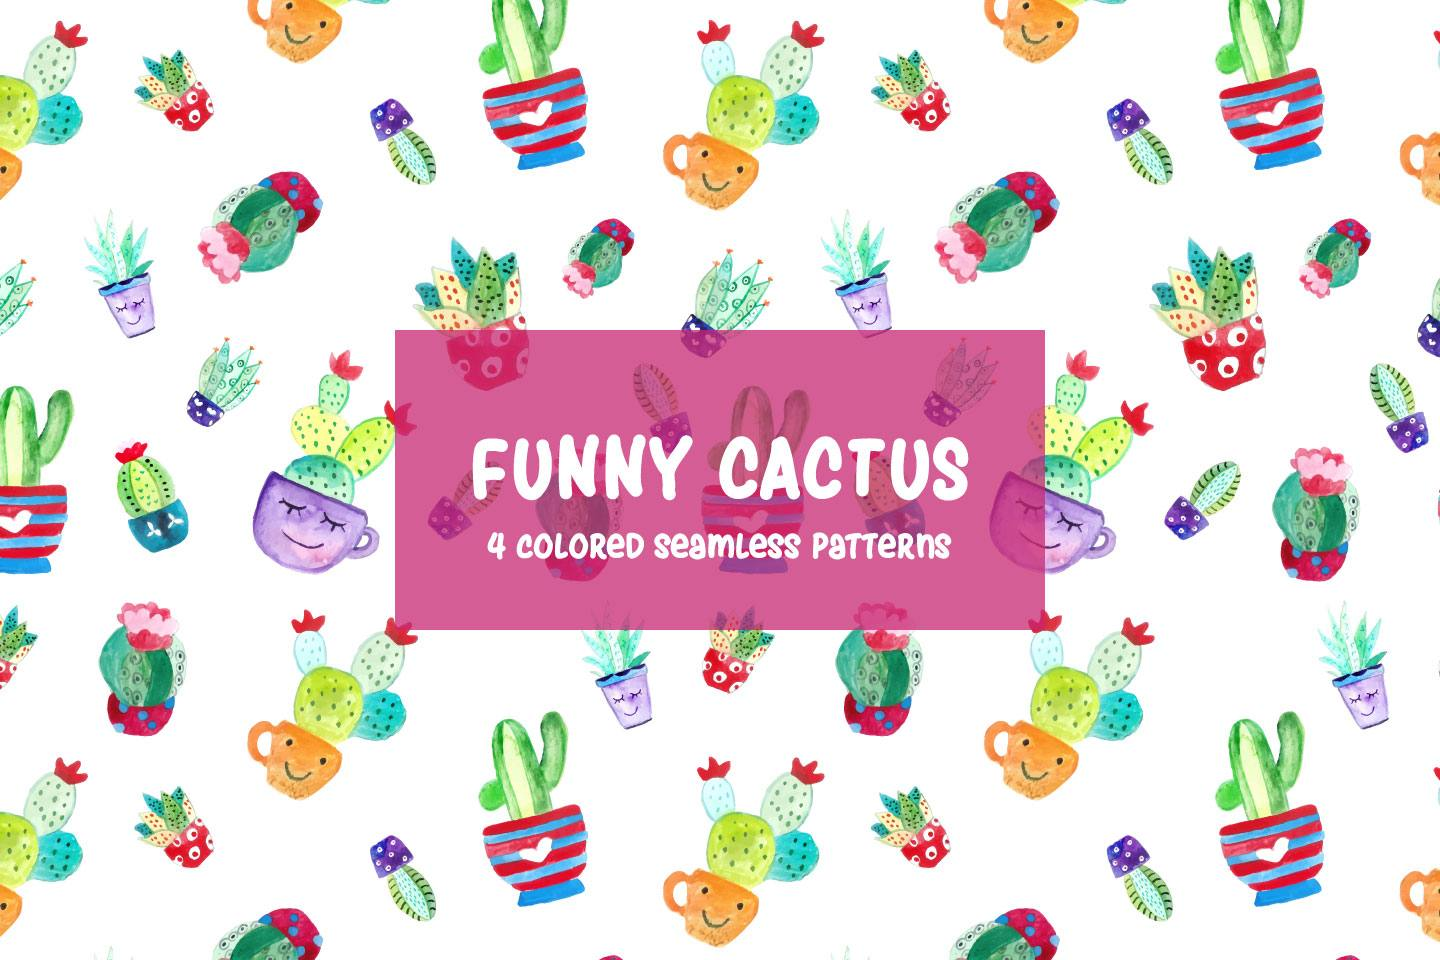 1440x960 Watercolor Funny Cactus Vector Free Pattern